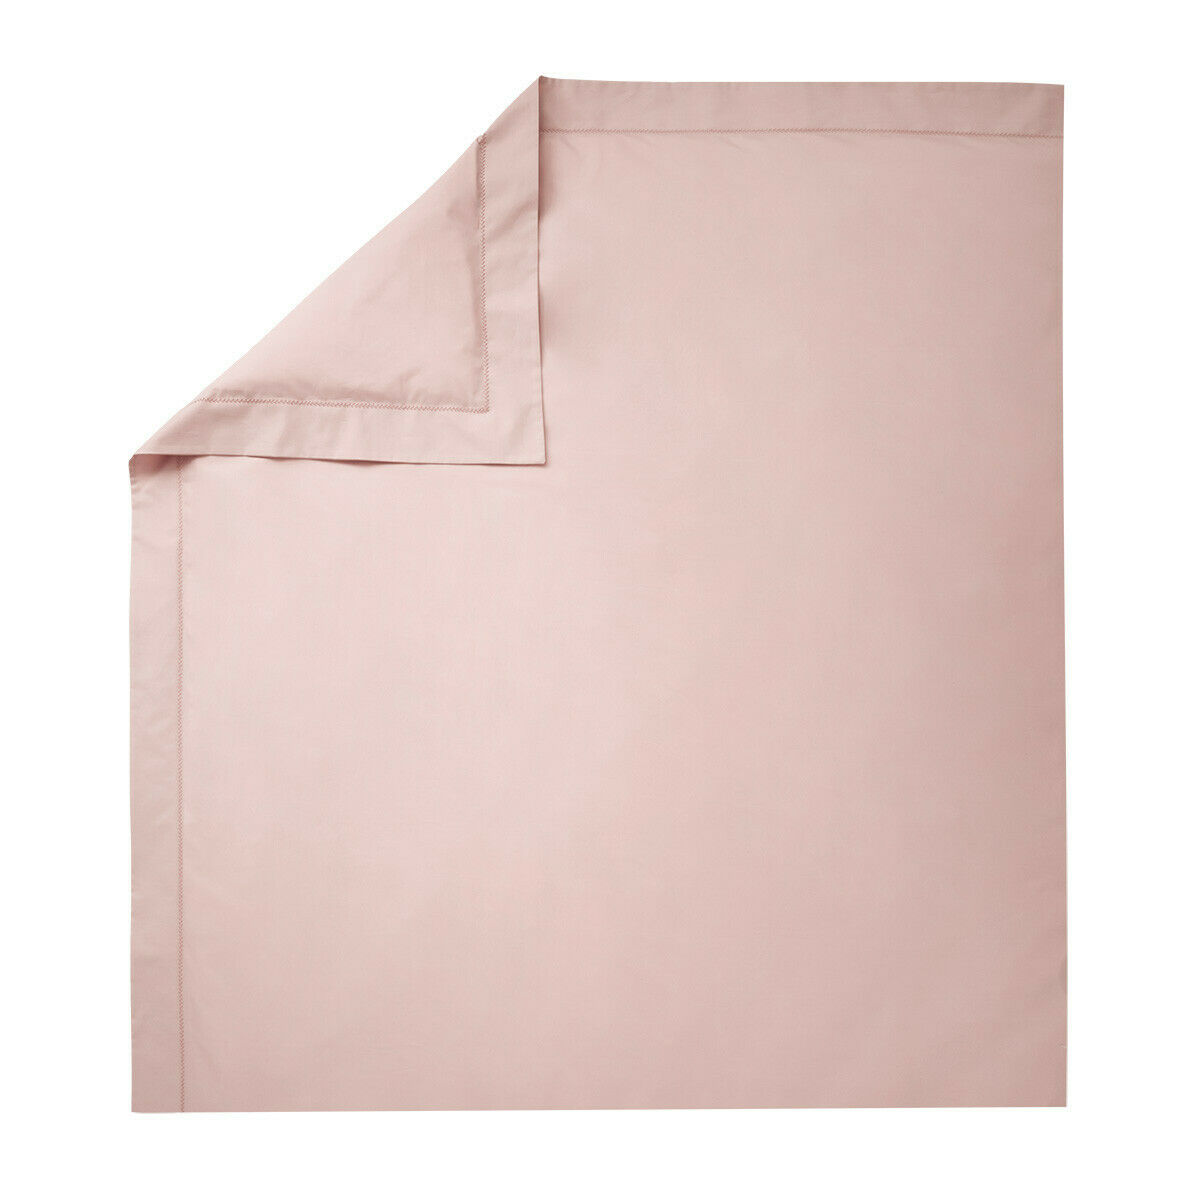 FRANCE YVES DELORME ROMA COTTON PERCALE DUVET COVER IN THE,Weiß,NACRE Farbe